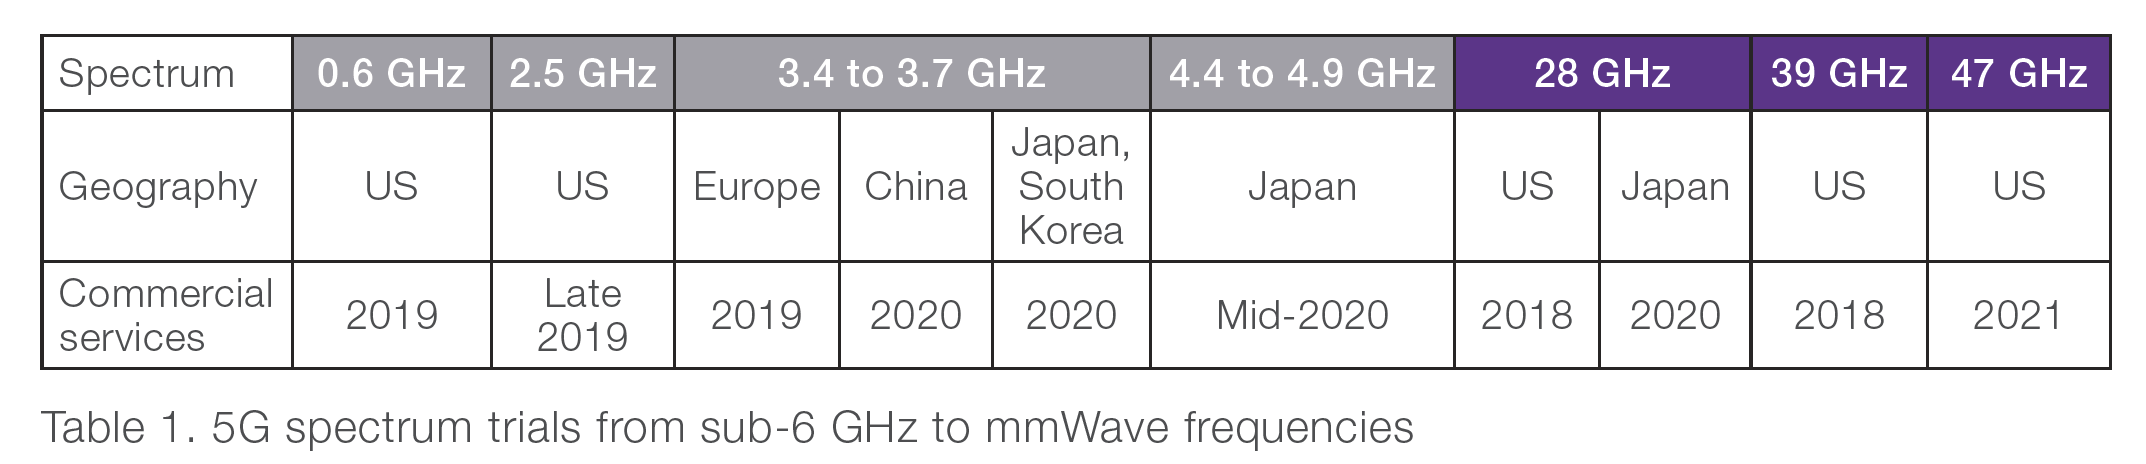 Table 1. 5G spectrum trials from sub-6 GHz to mmWave frequencies